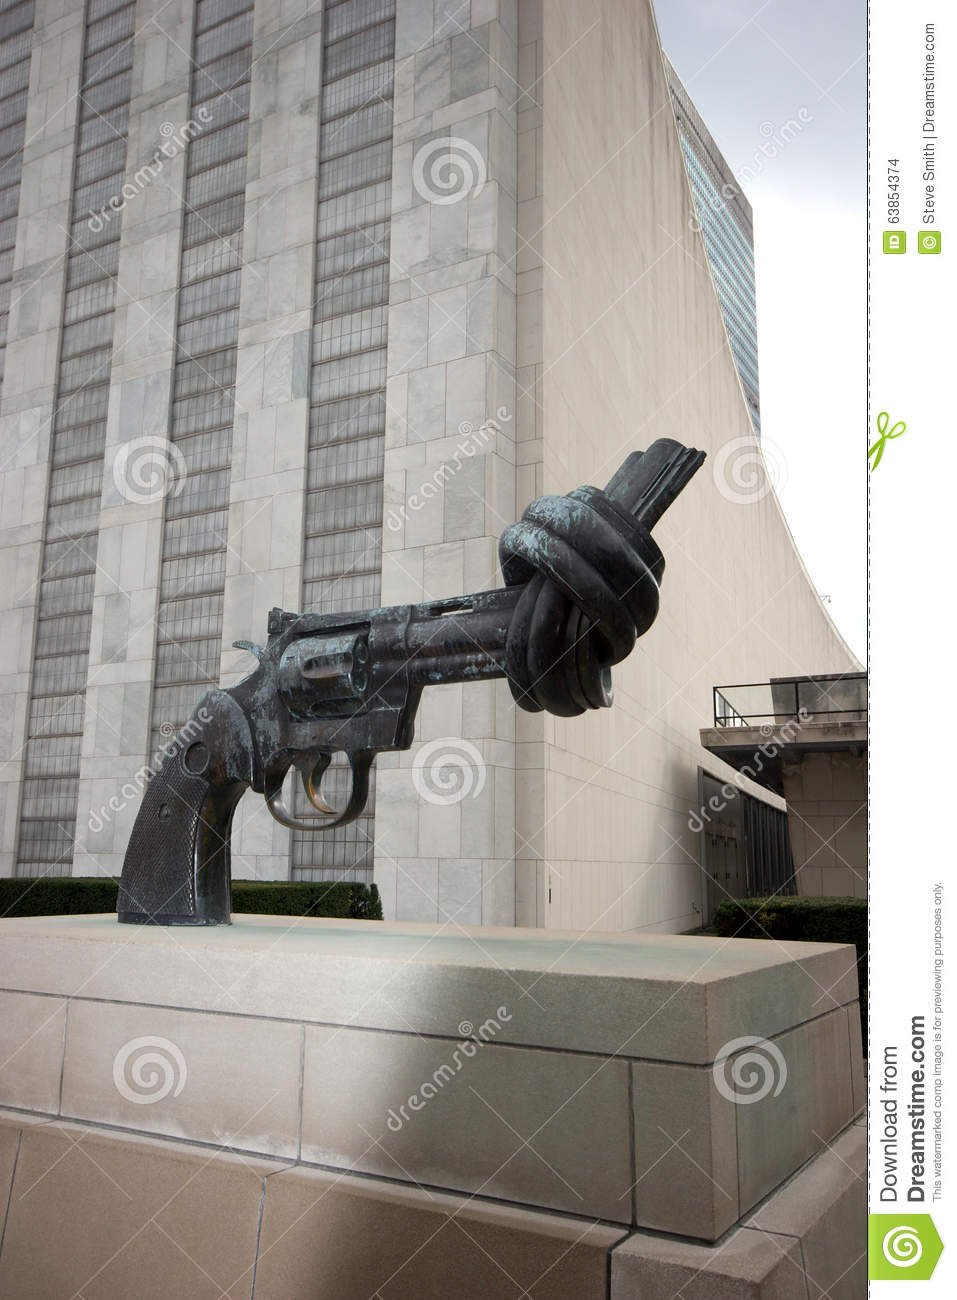 Twisted handgun statue at United Nations Plaza